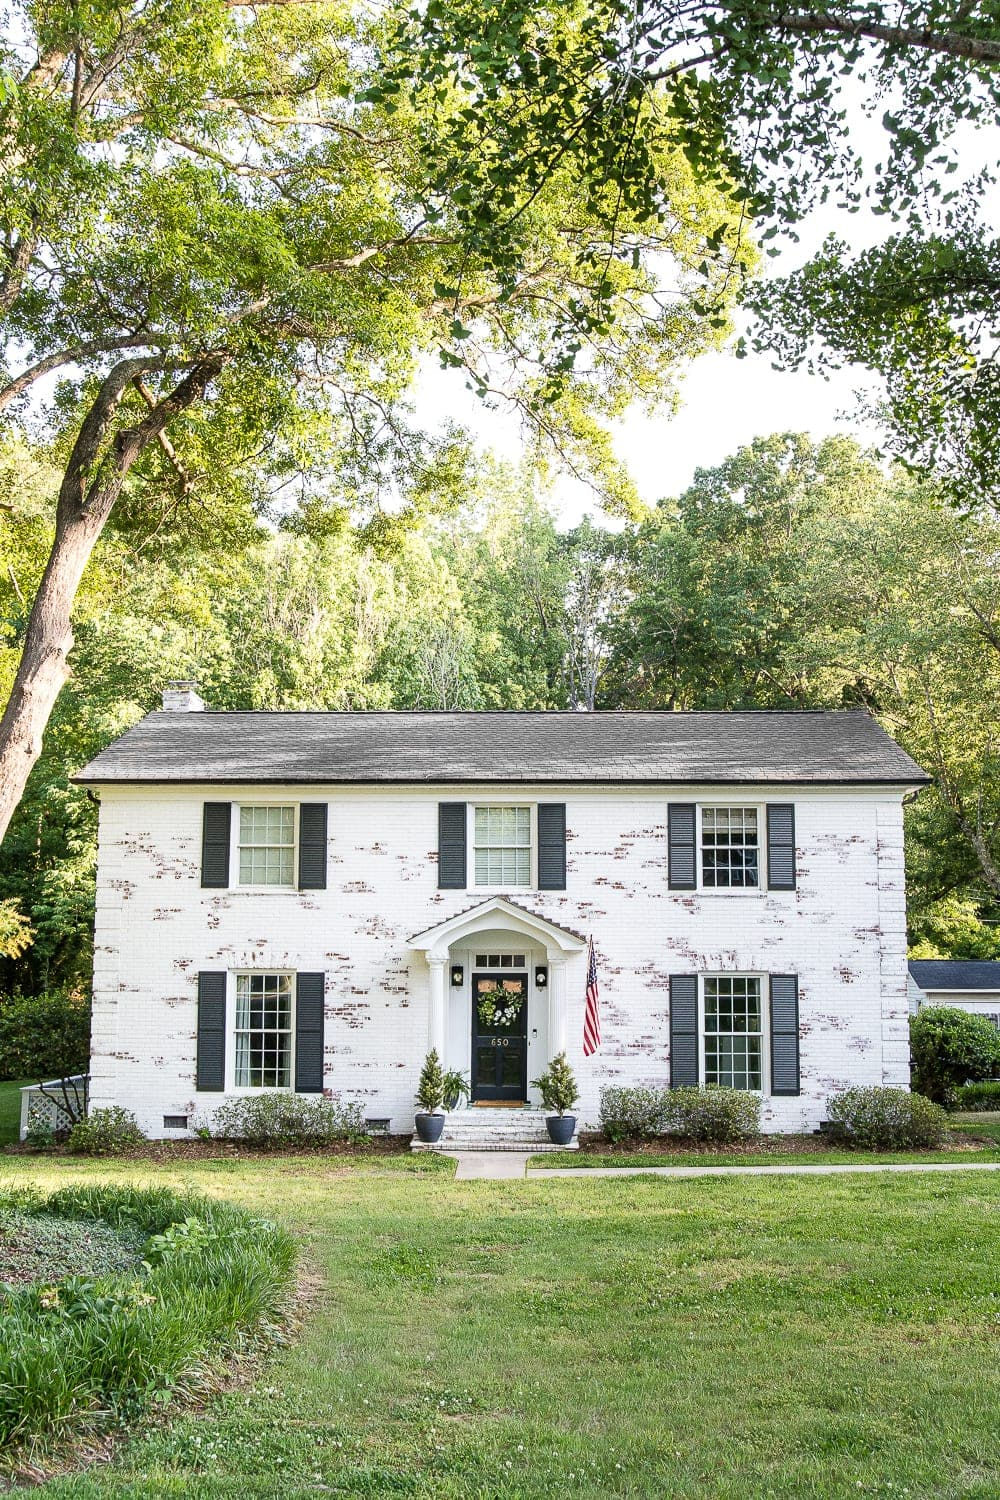 Limewashed white colonial house with black shutters